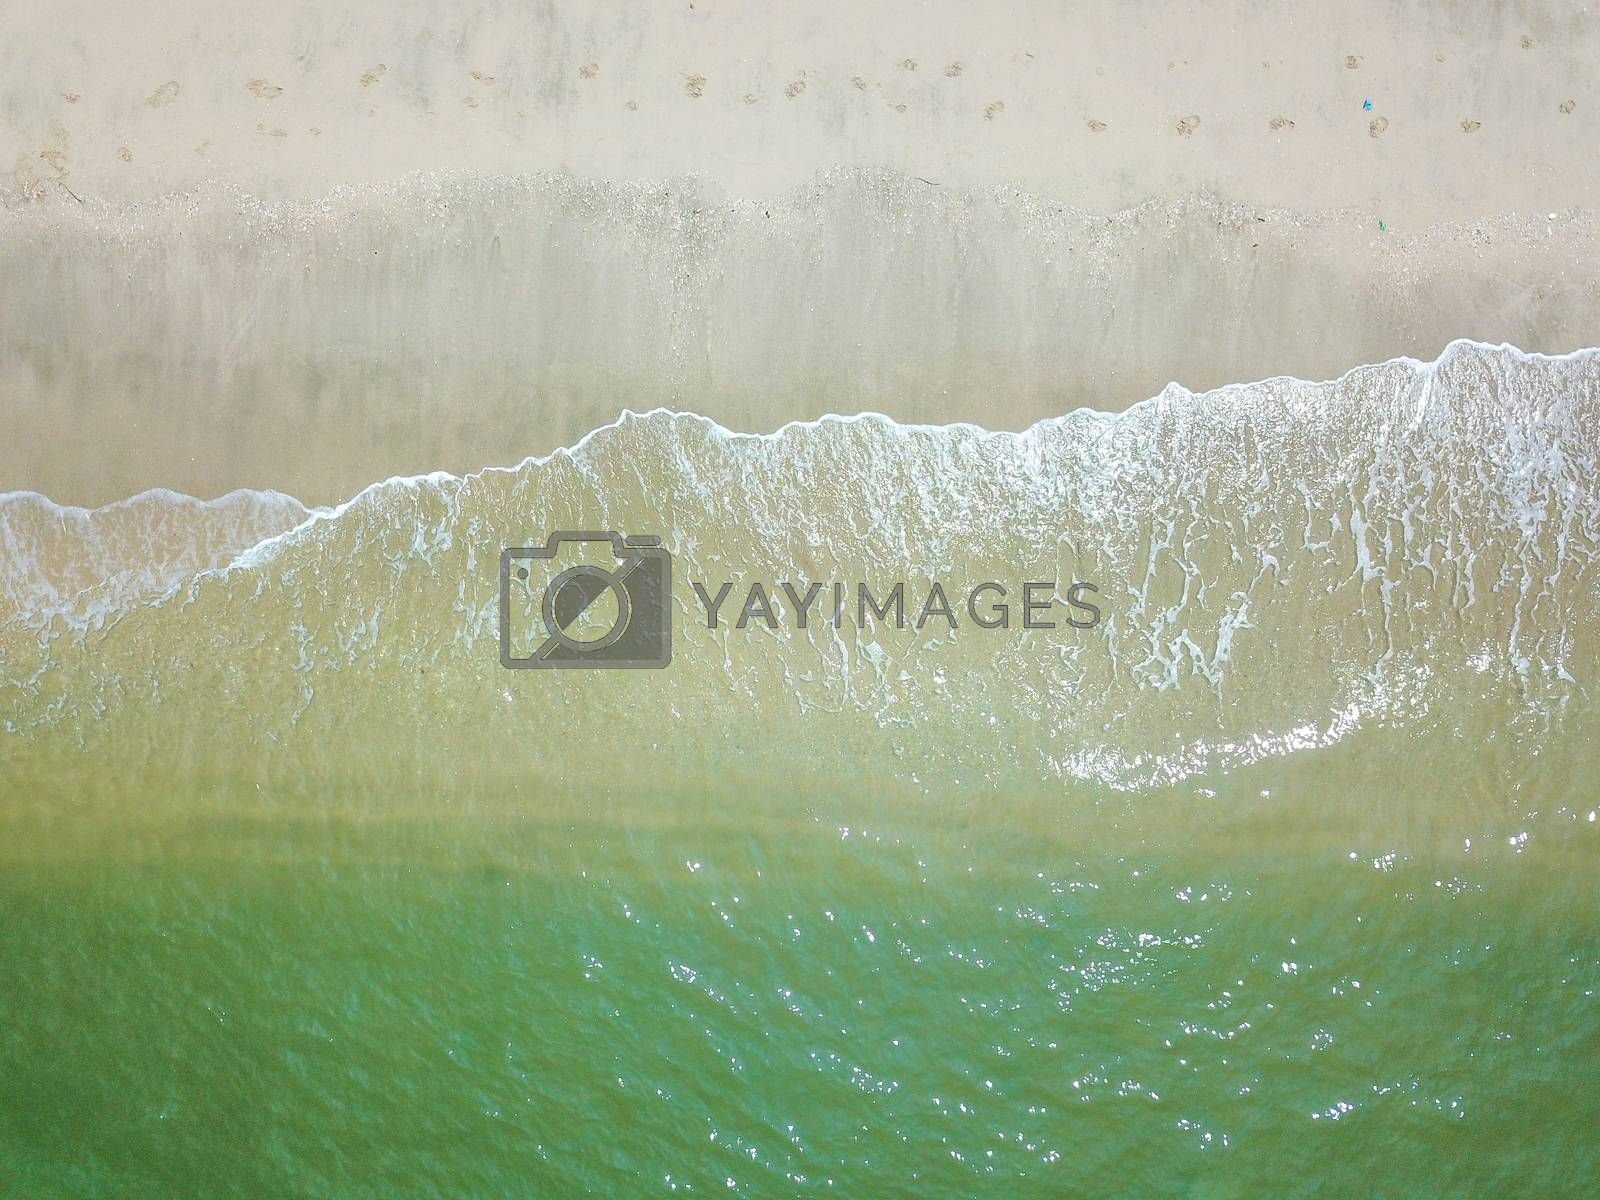 Blue ocean wave on clean sandy beach. Holidays and Travel Concept